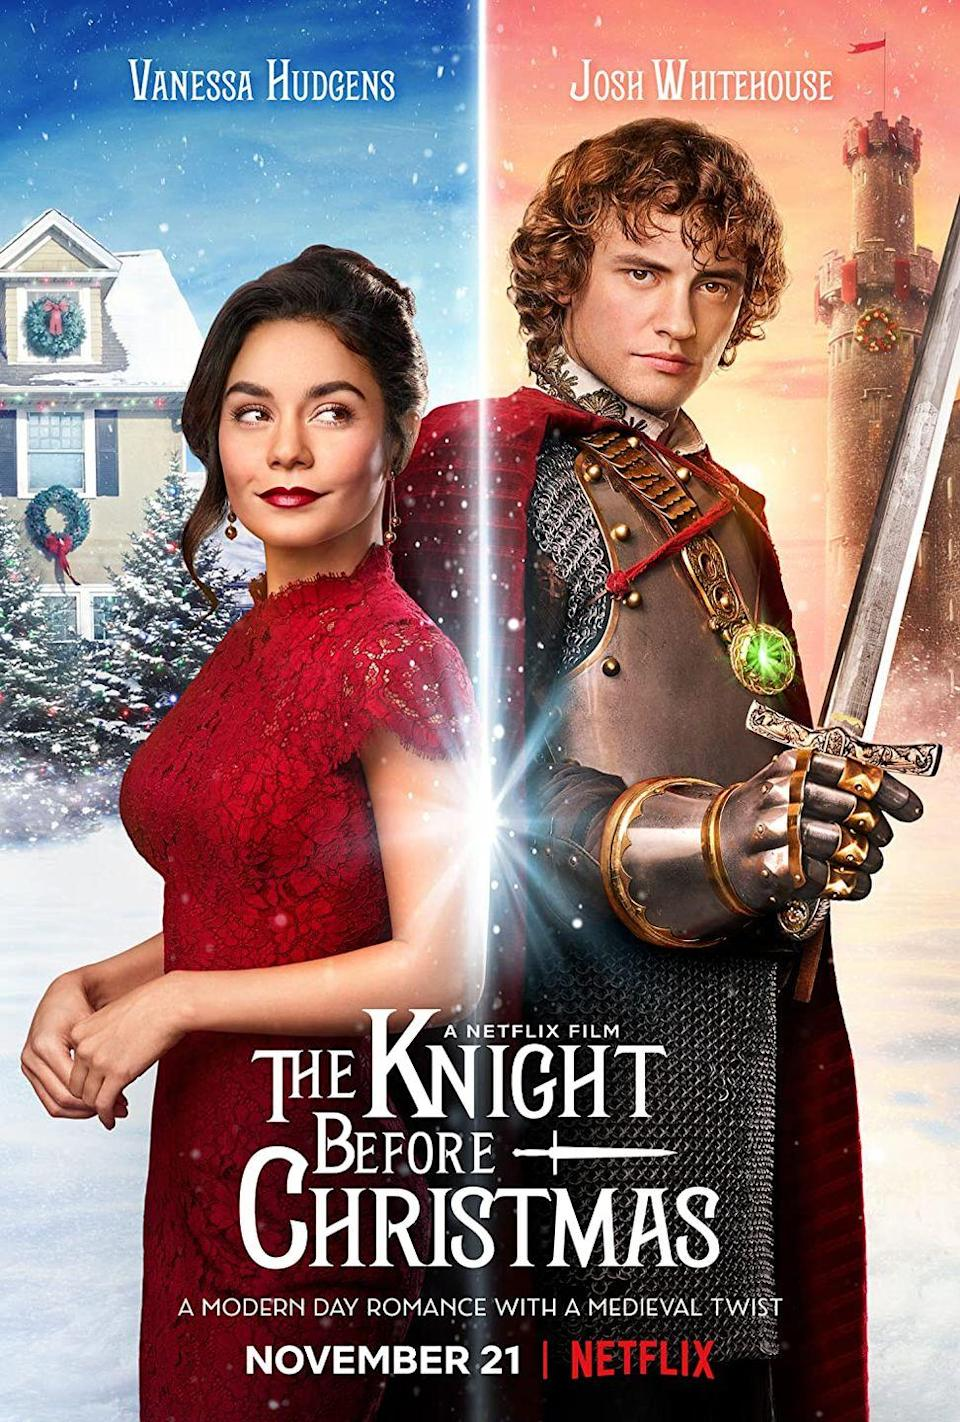 """<p><em>he Knight Before Christmas</em> officially gets the award for the best Christmas pun/title on this list. Vanessa Hudgens stars as Brooke, a teacher who has given up on love until she (quite literally) runs into Sir Cole Christopher Frederick Lyons, a medieval knight who has somehow ended up in the present day. </p><p>Brooke, of course, feels compelled to help Sir Cole get back to his right time period or remember who he actually is—whichever comes first. That is, unless Brooke and Sir Cole find themselves living happily ever after instead...</p><p><a class=""""link rapid-noclick-resp"""" href=""""https://www.netflix.com/title/81026188"""" rel=""""nofollow noopener"""" target=""""_blank"""" data-ylk=""""slk:Watch Now"""">Watch Now</a></p>"""